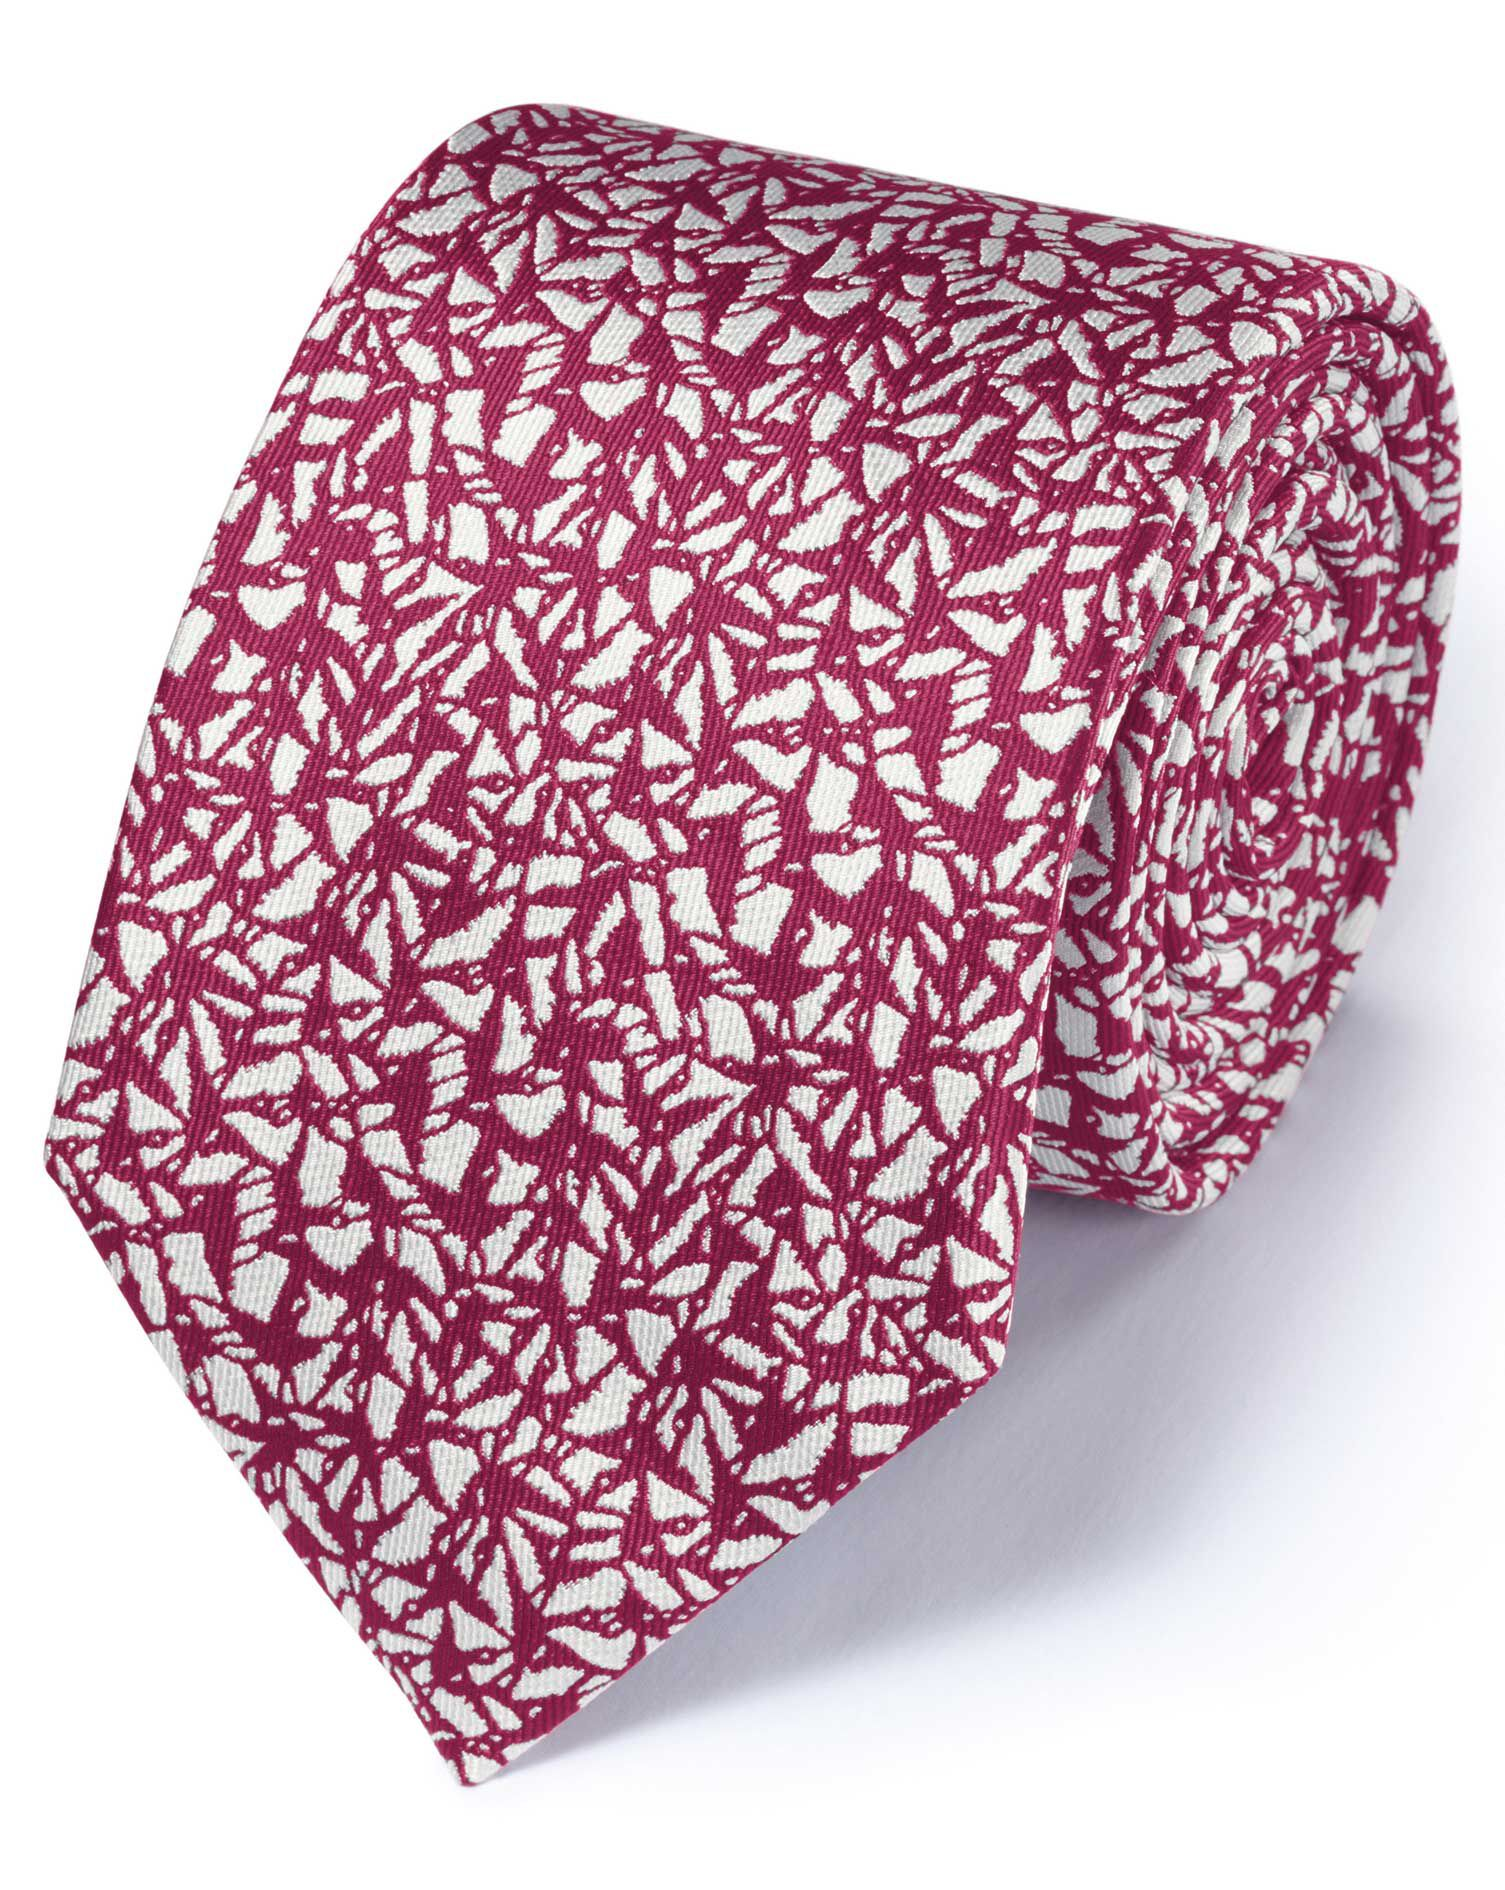 Magenta Silk Classic Abstract Texture Tie Size OSFA by Charles Tyrwhitt